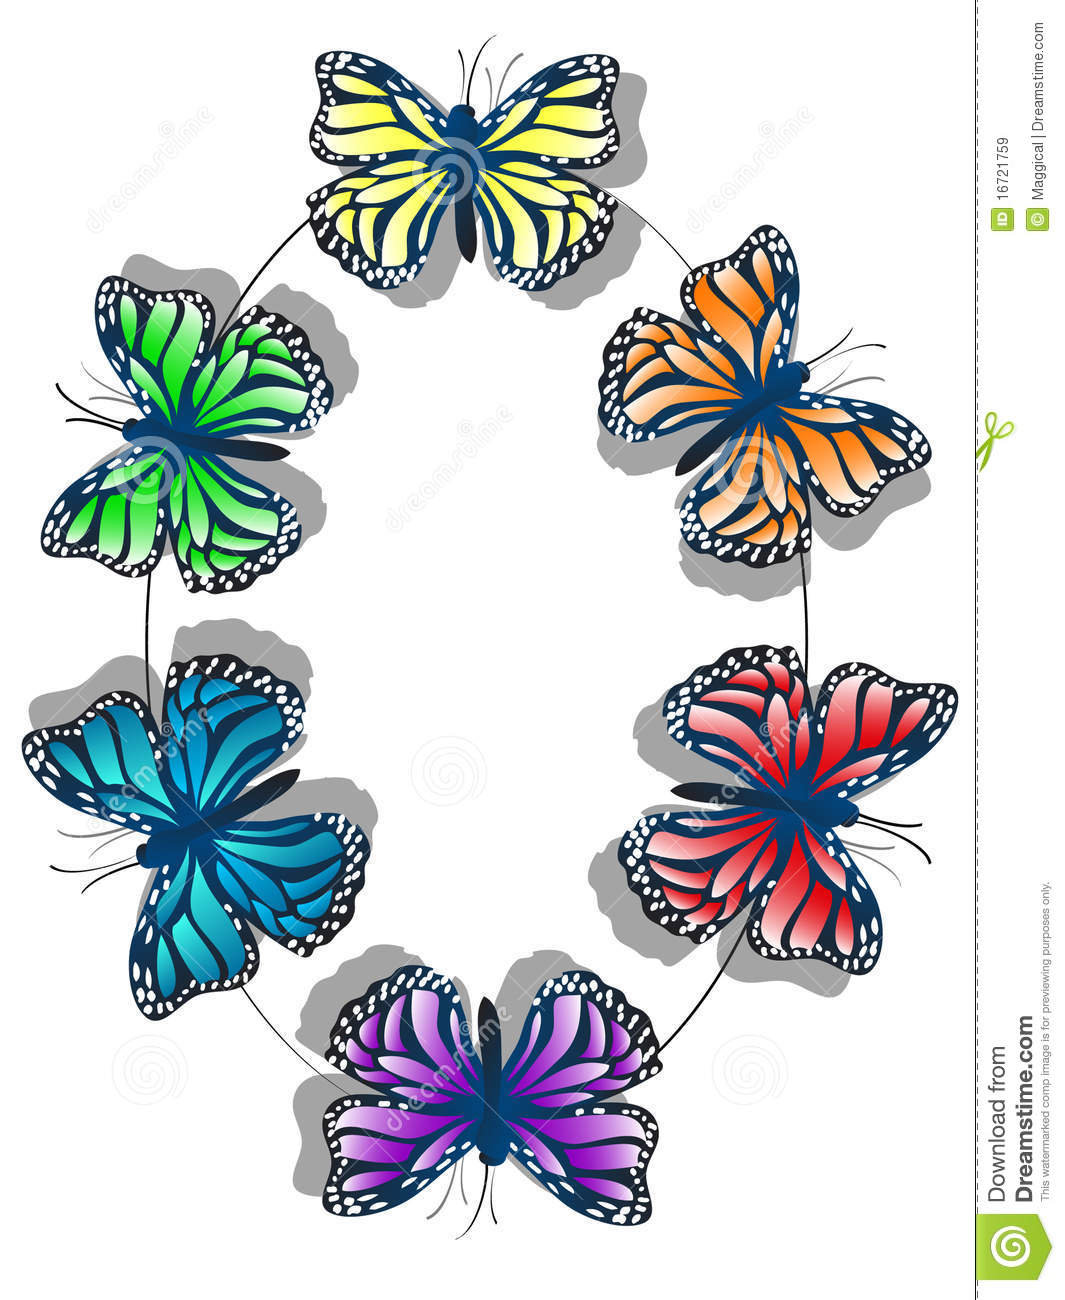 butterfly color wheel royalty free stock photo